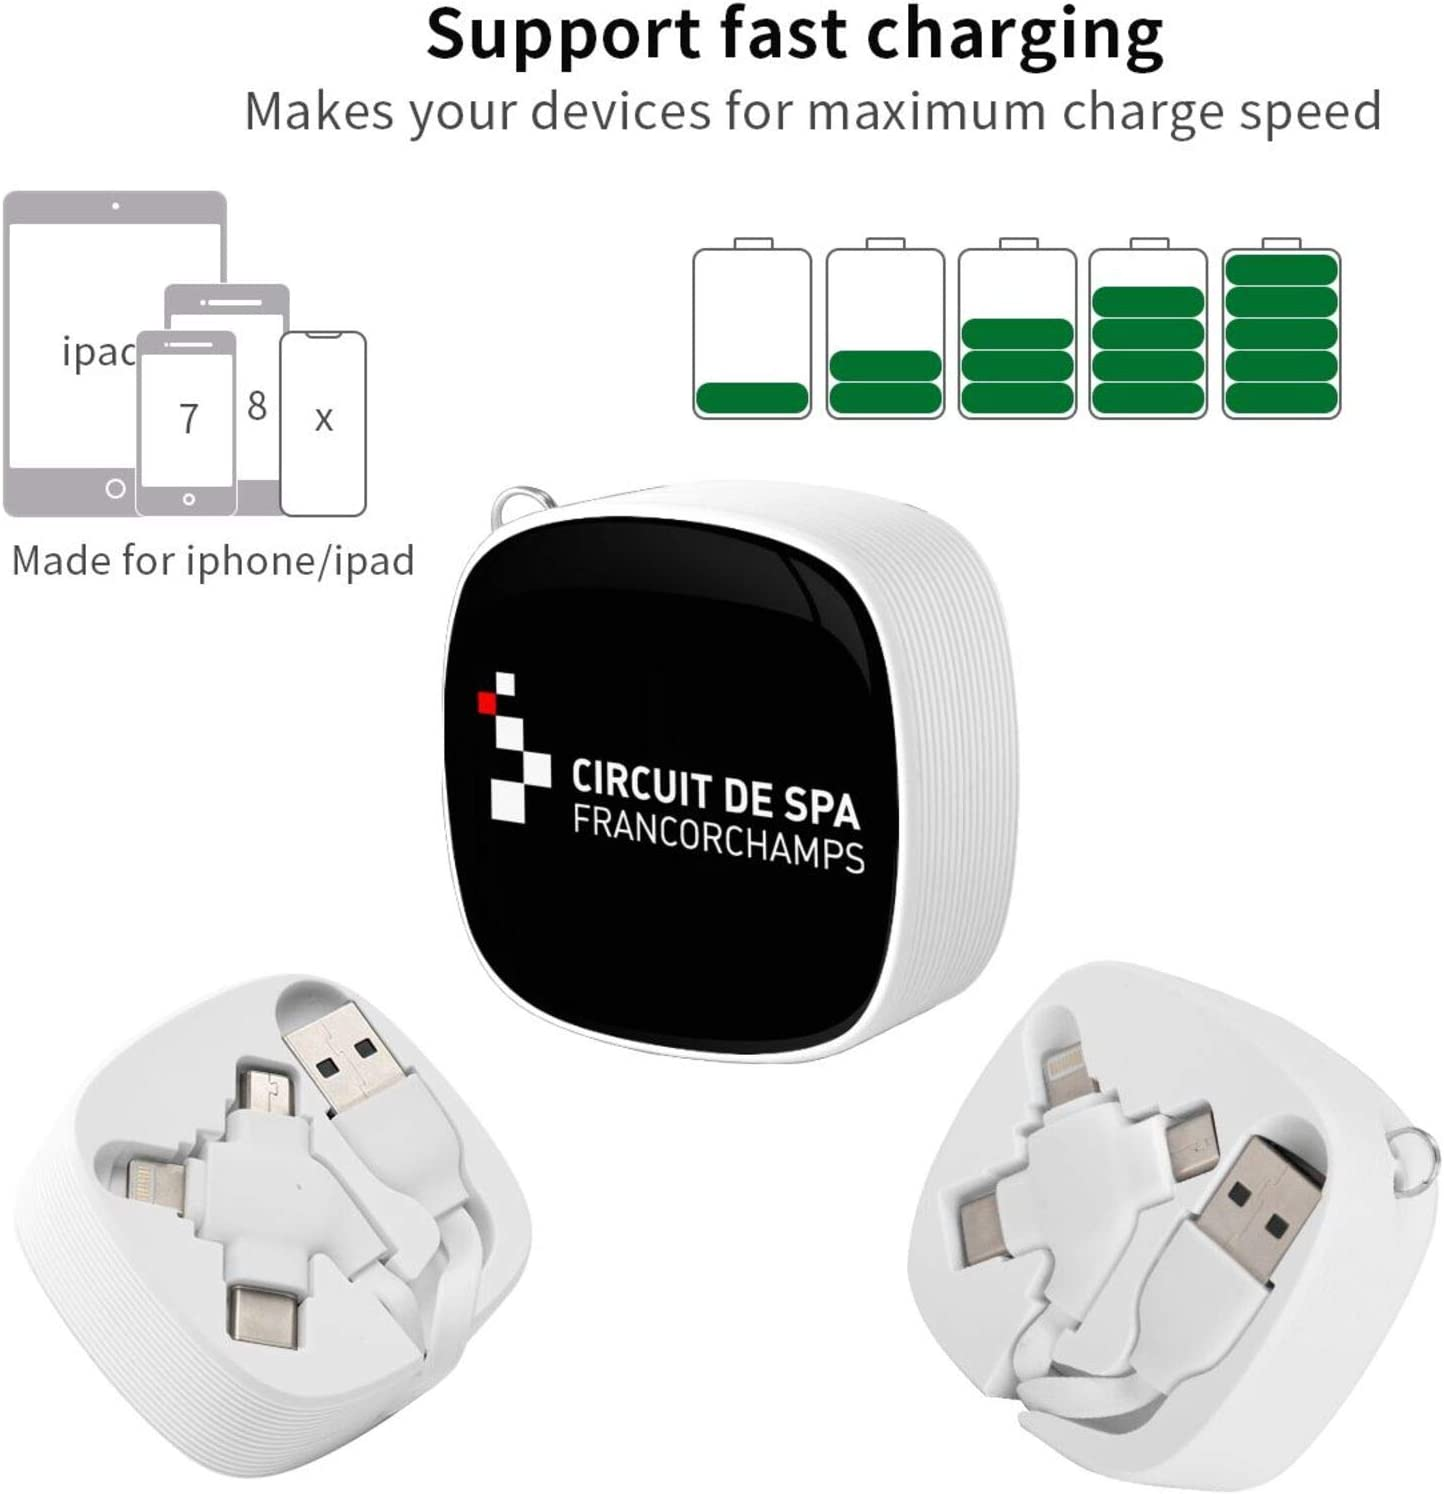 HJKHJK Circuit de Spa Francorchamps Multi USB Charging Cable Universal 3in1 Multi Charger Cable Adapter Type-C//Micro USB Port,Compatible with Cell Phones and More